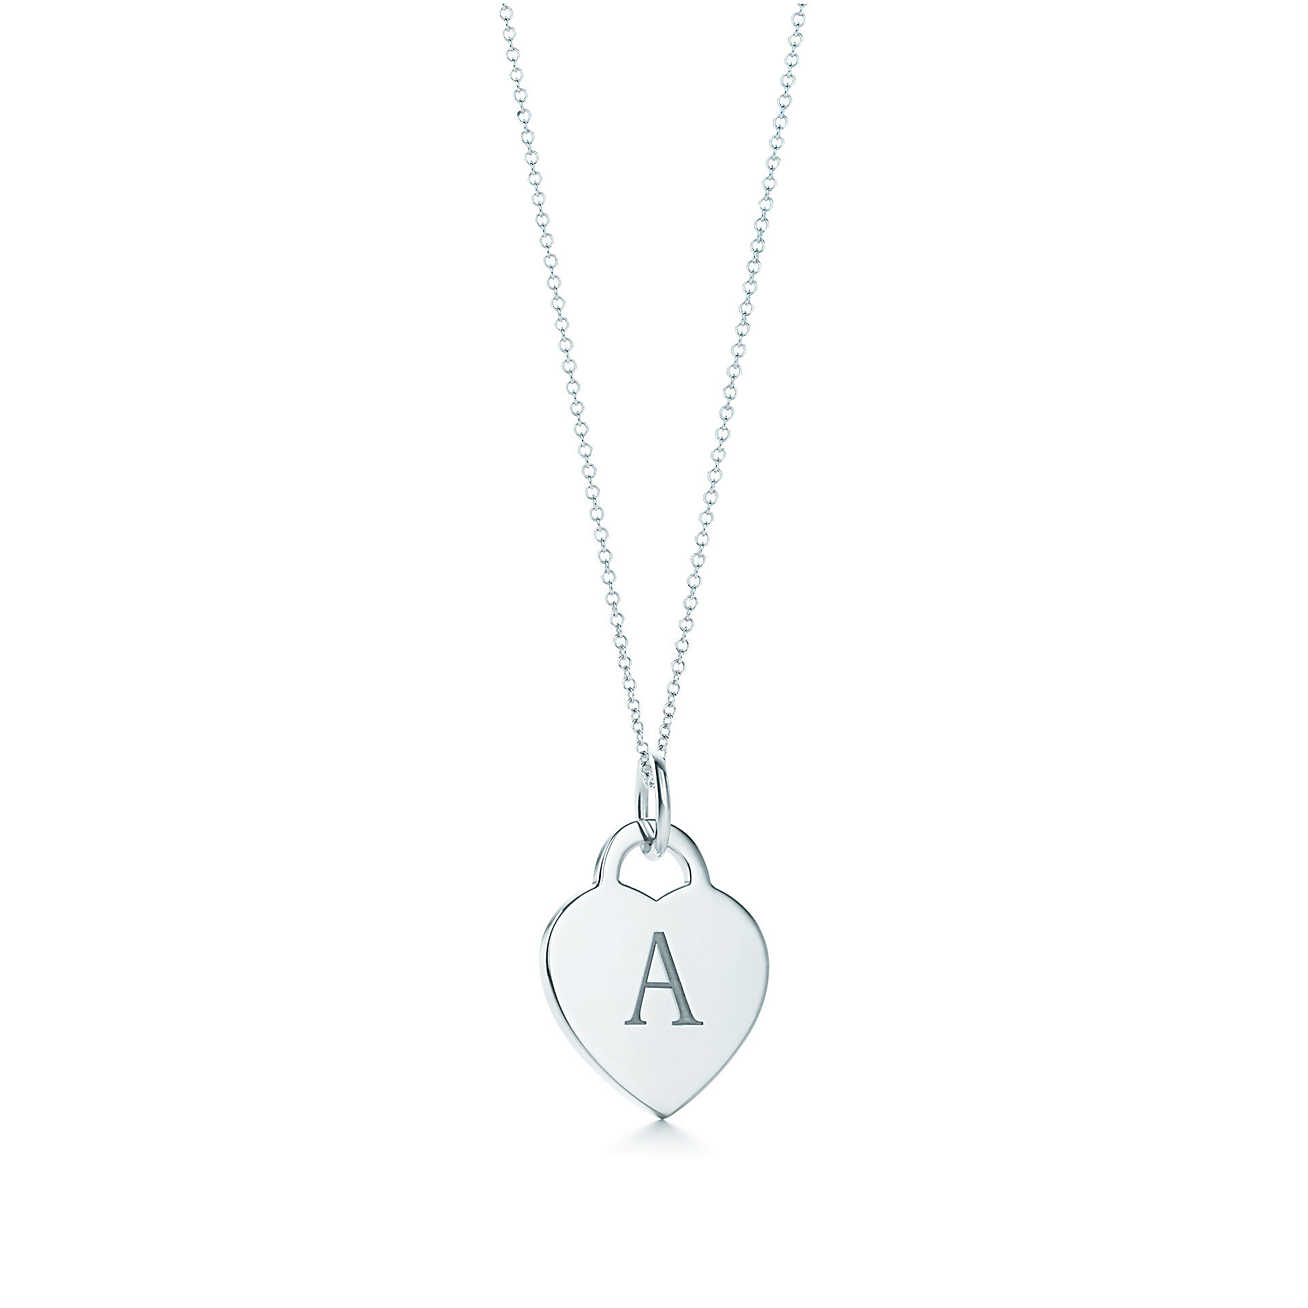 010df57d0c03b1 20 Best-Looking Initial Necklaces You Will Not Want to Take Off | JJ